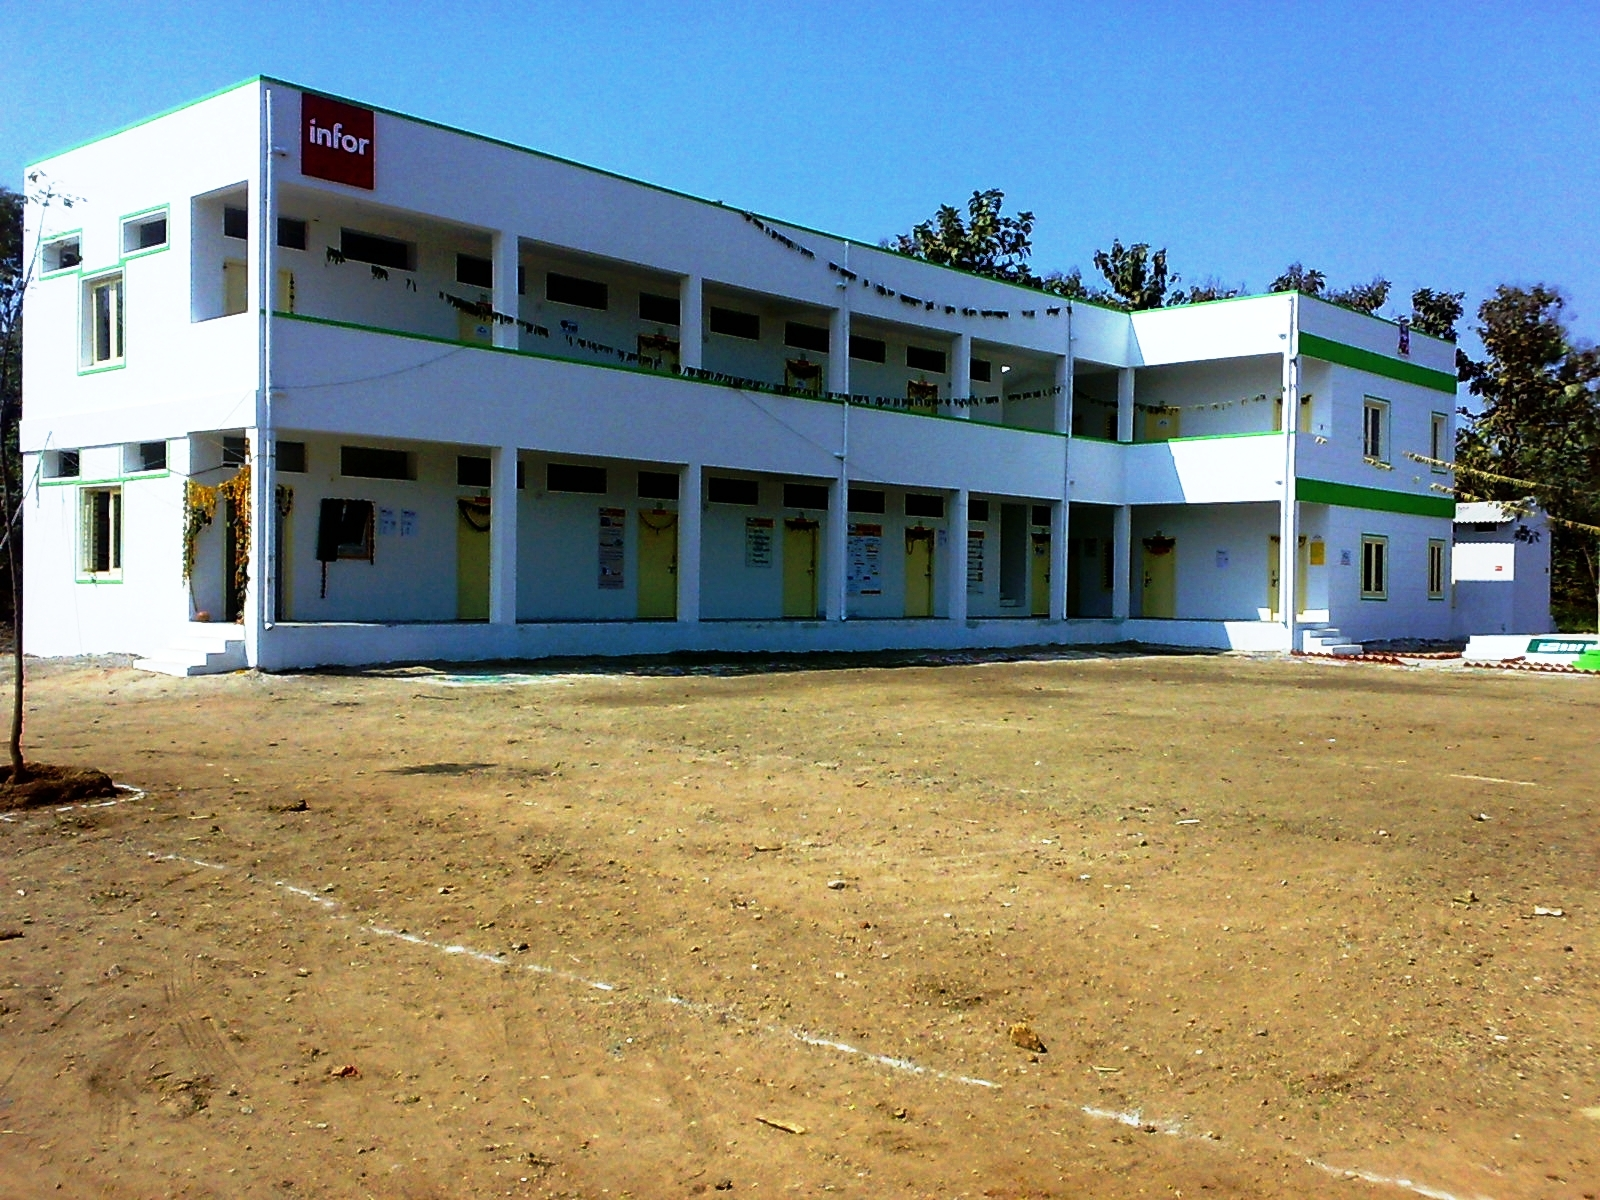 Our schools rural development foundation Indian building photos